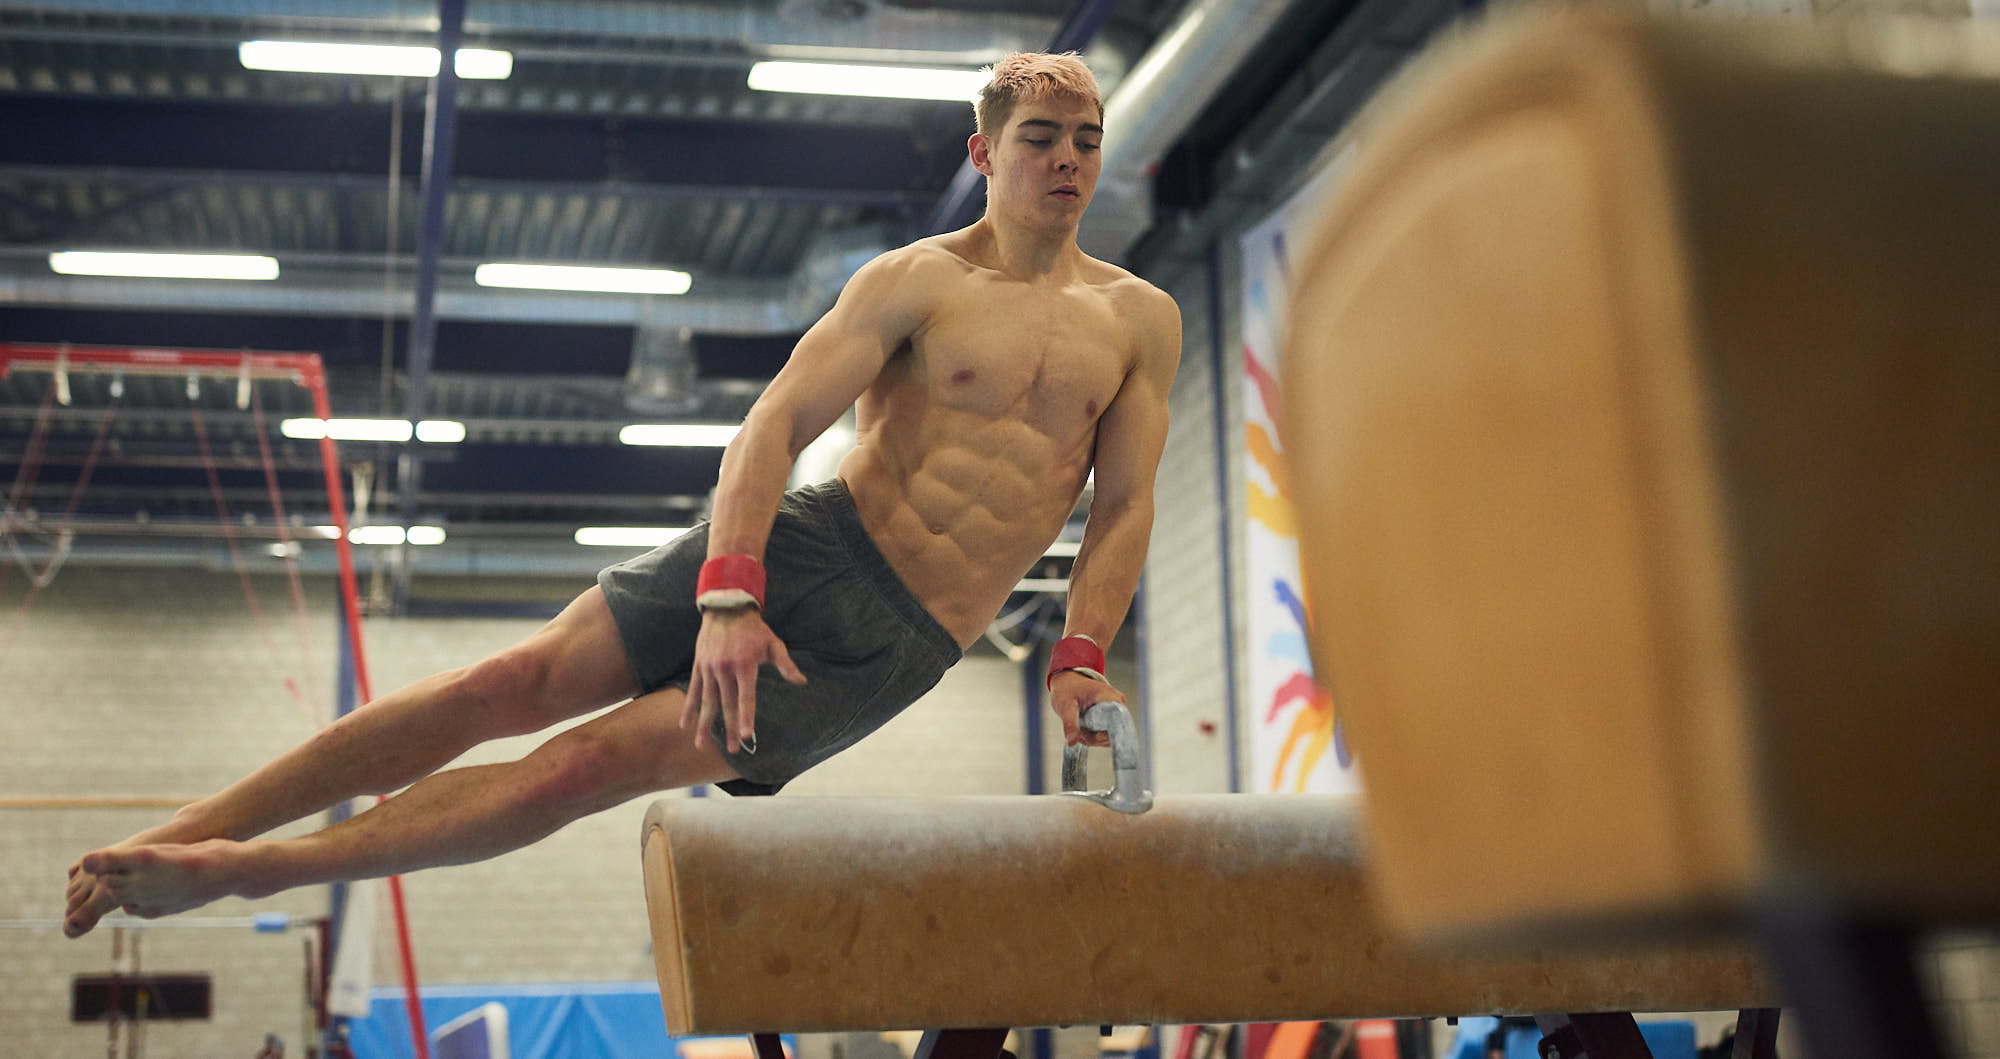 Bram Verhofstad training a gymnastics routine